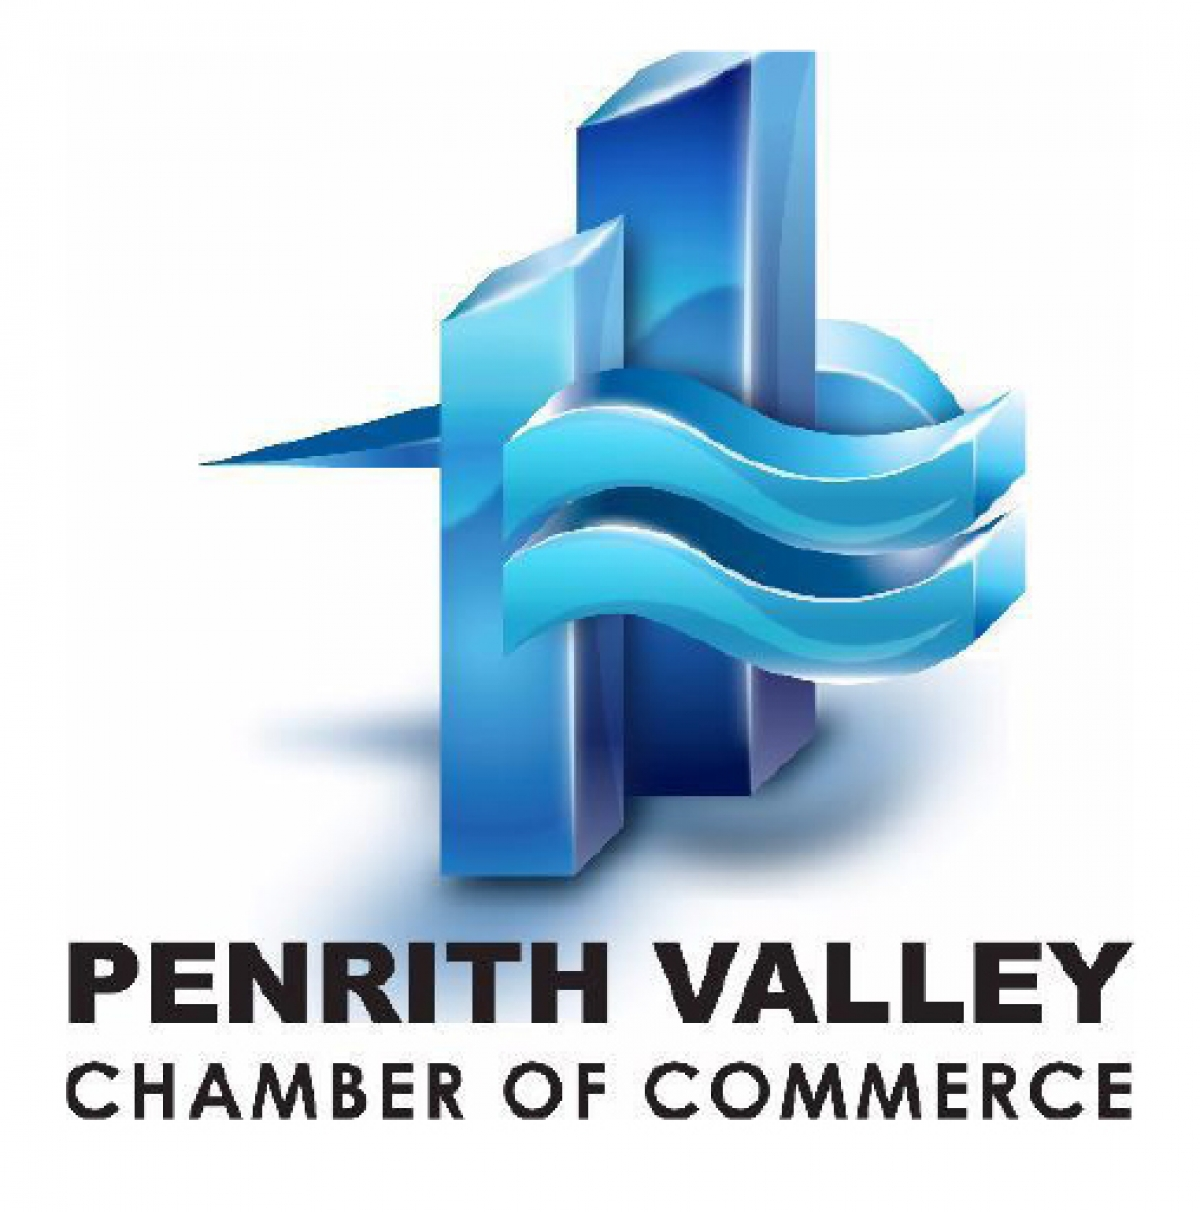 Penrith Valley Chamber